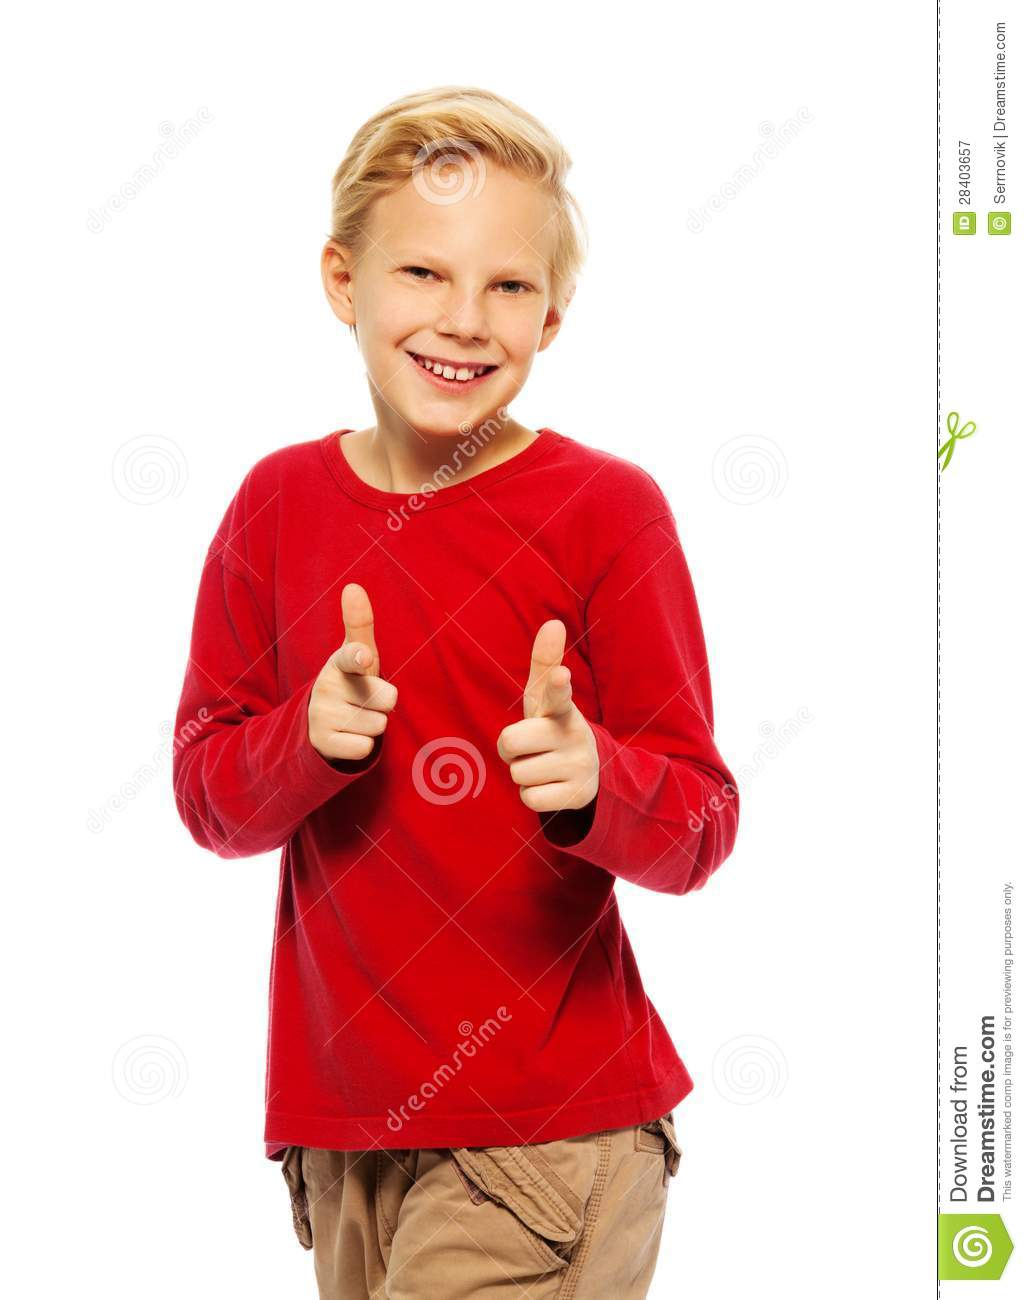 Cool 11 Years Old Boy Stock Image Image Of Caucasian